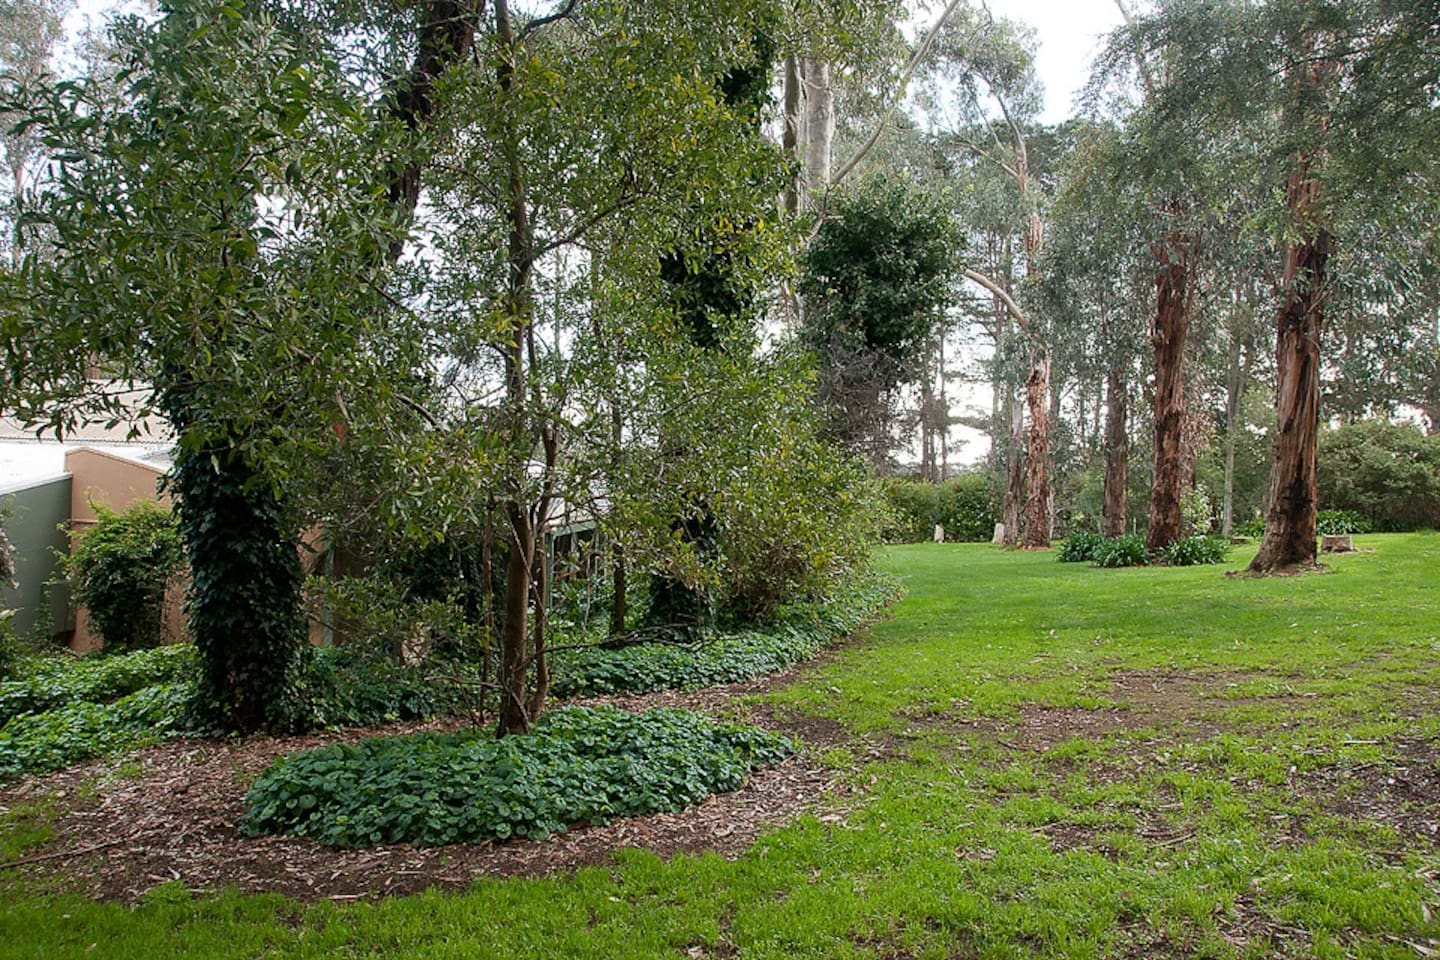 Large trees and garden